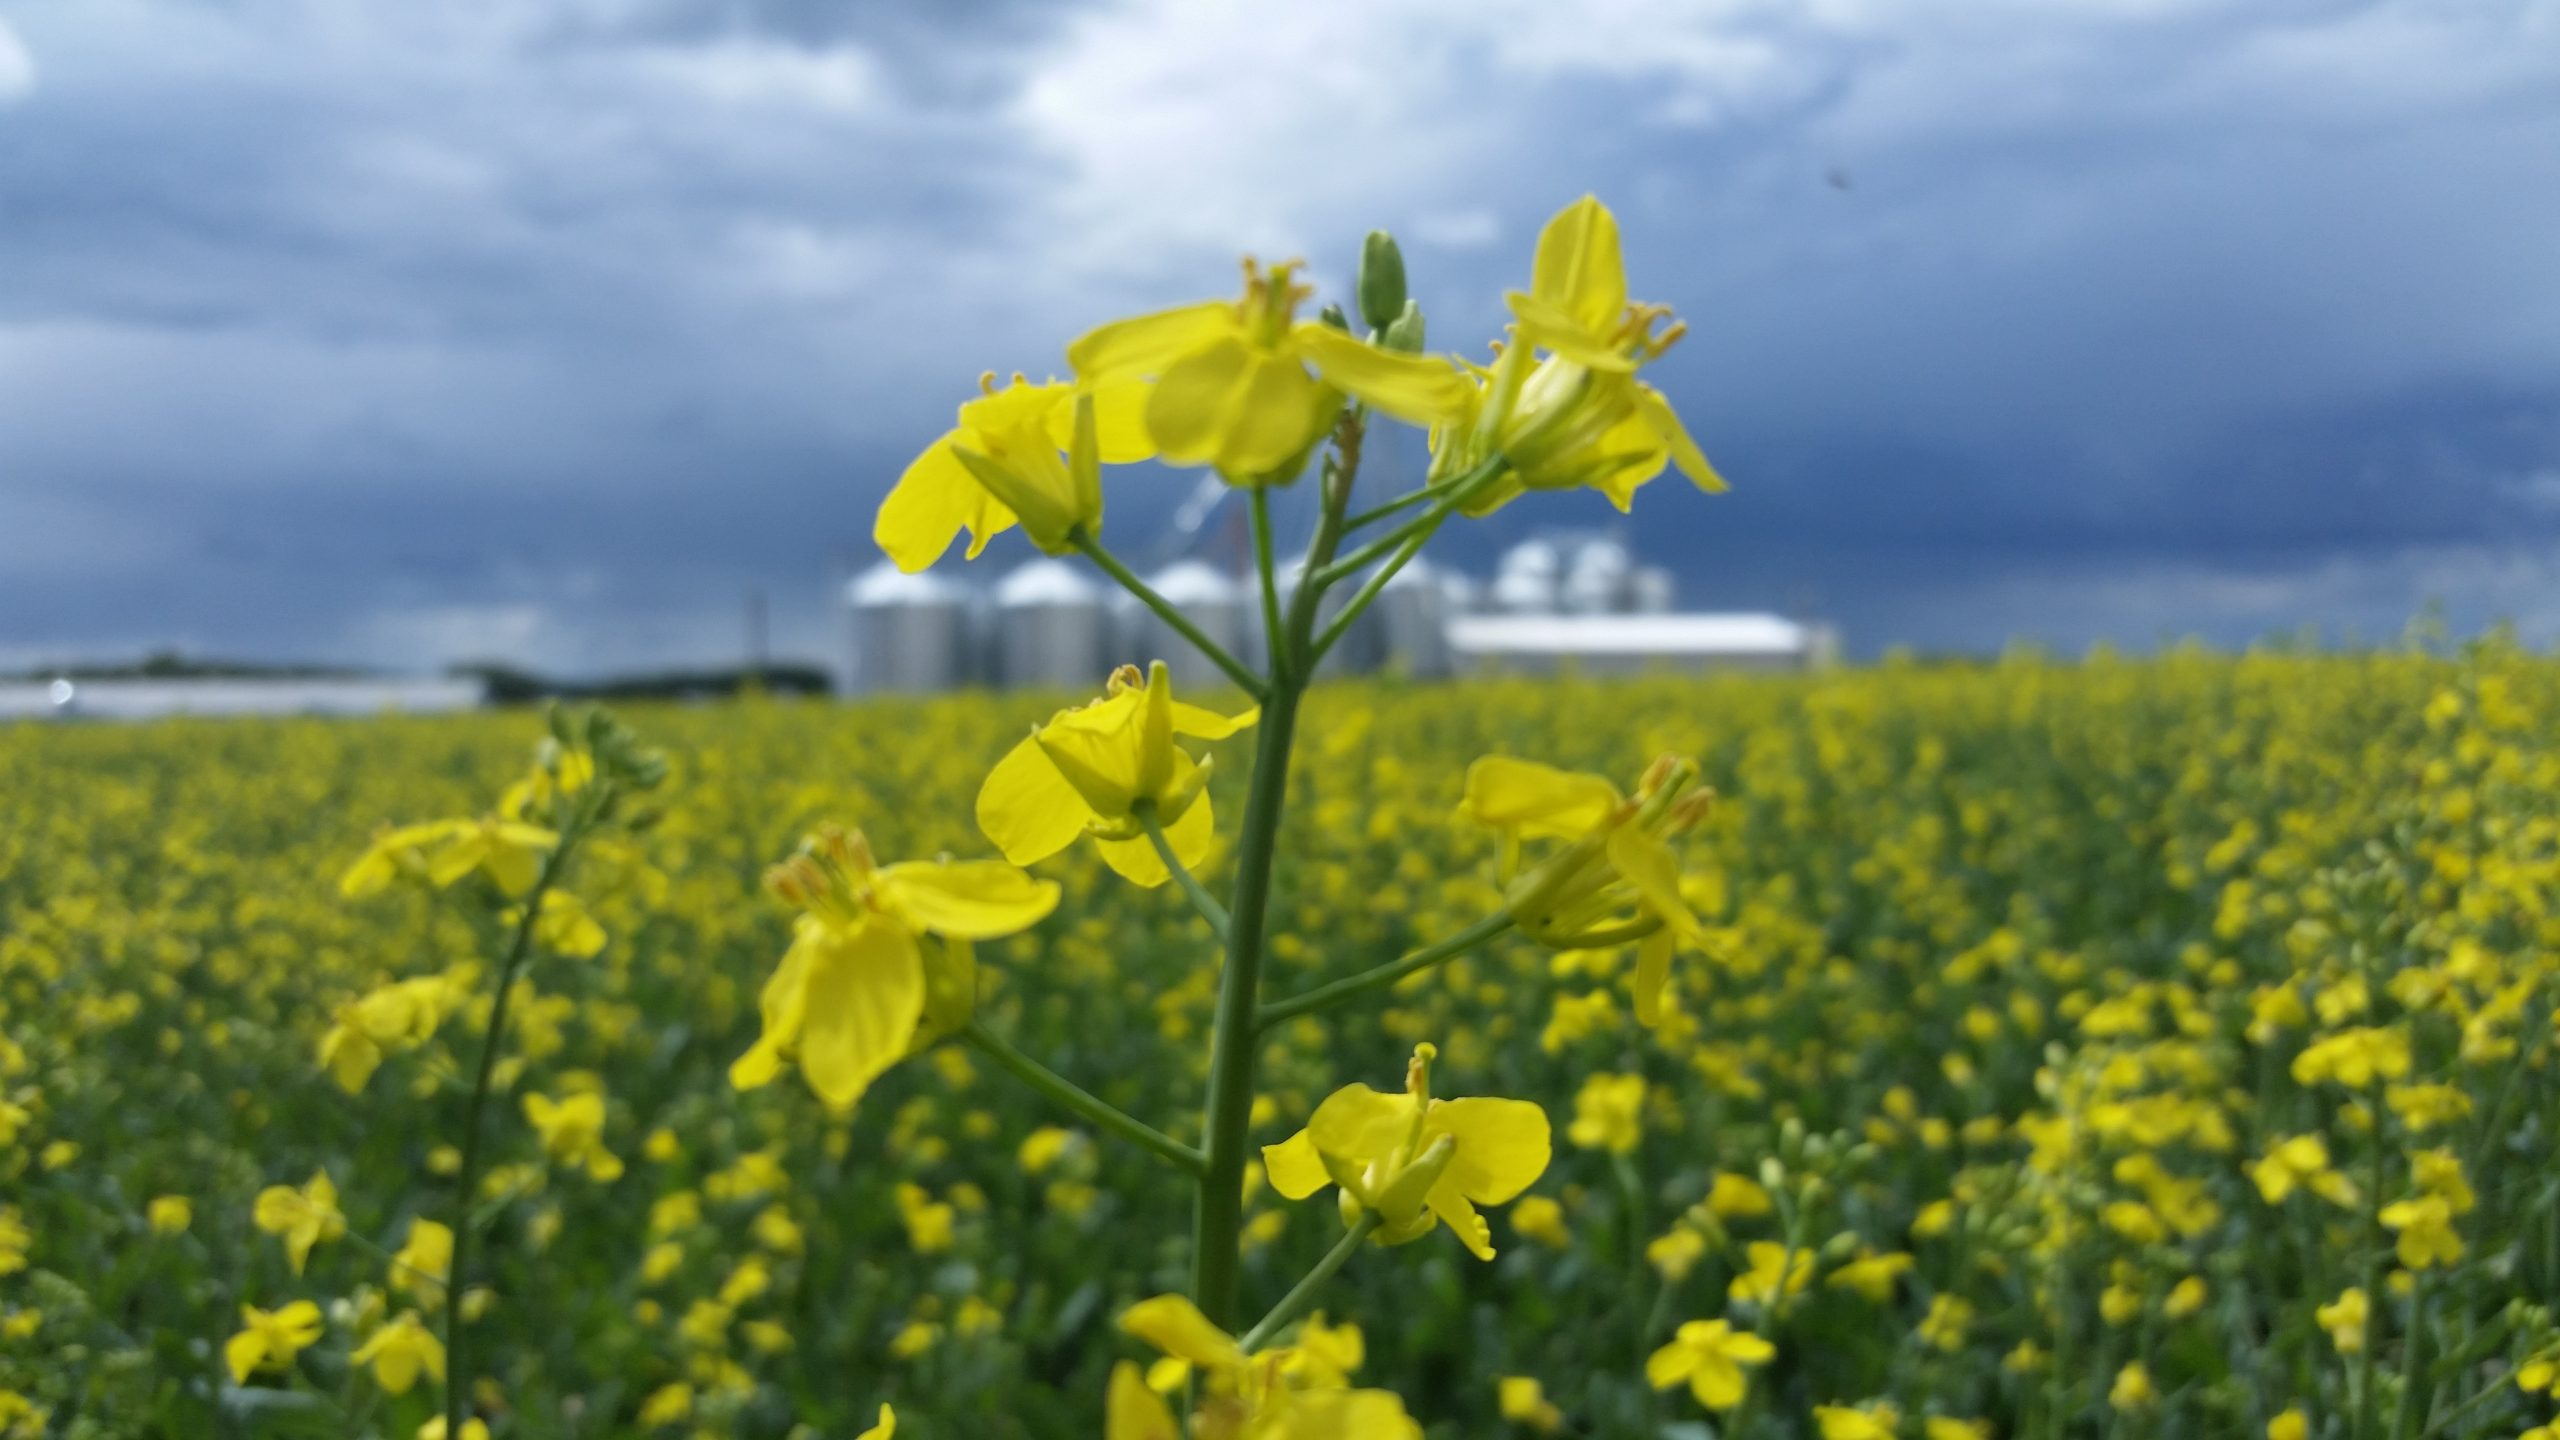 Flowering canola plant in field